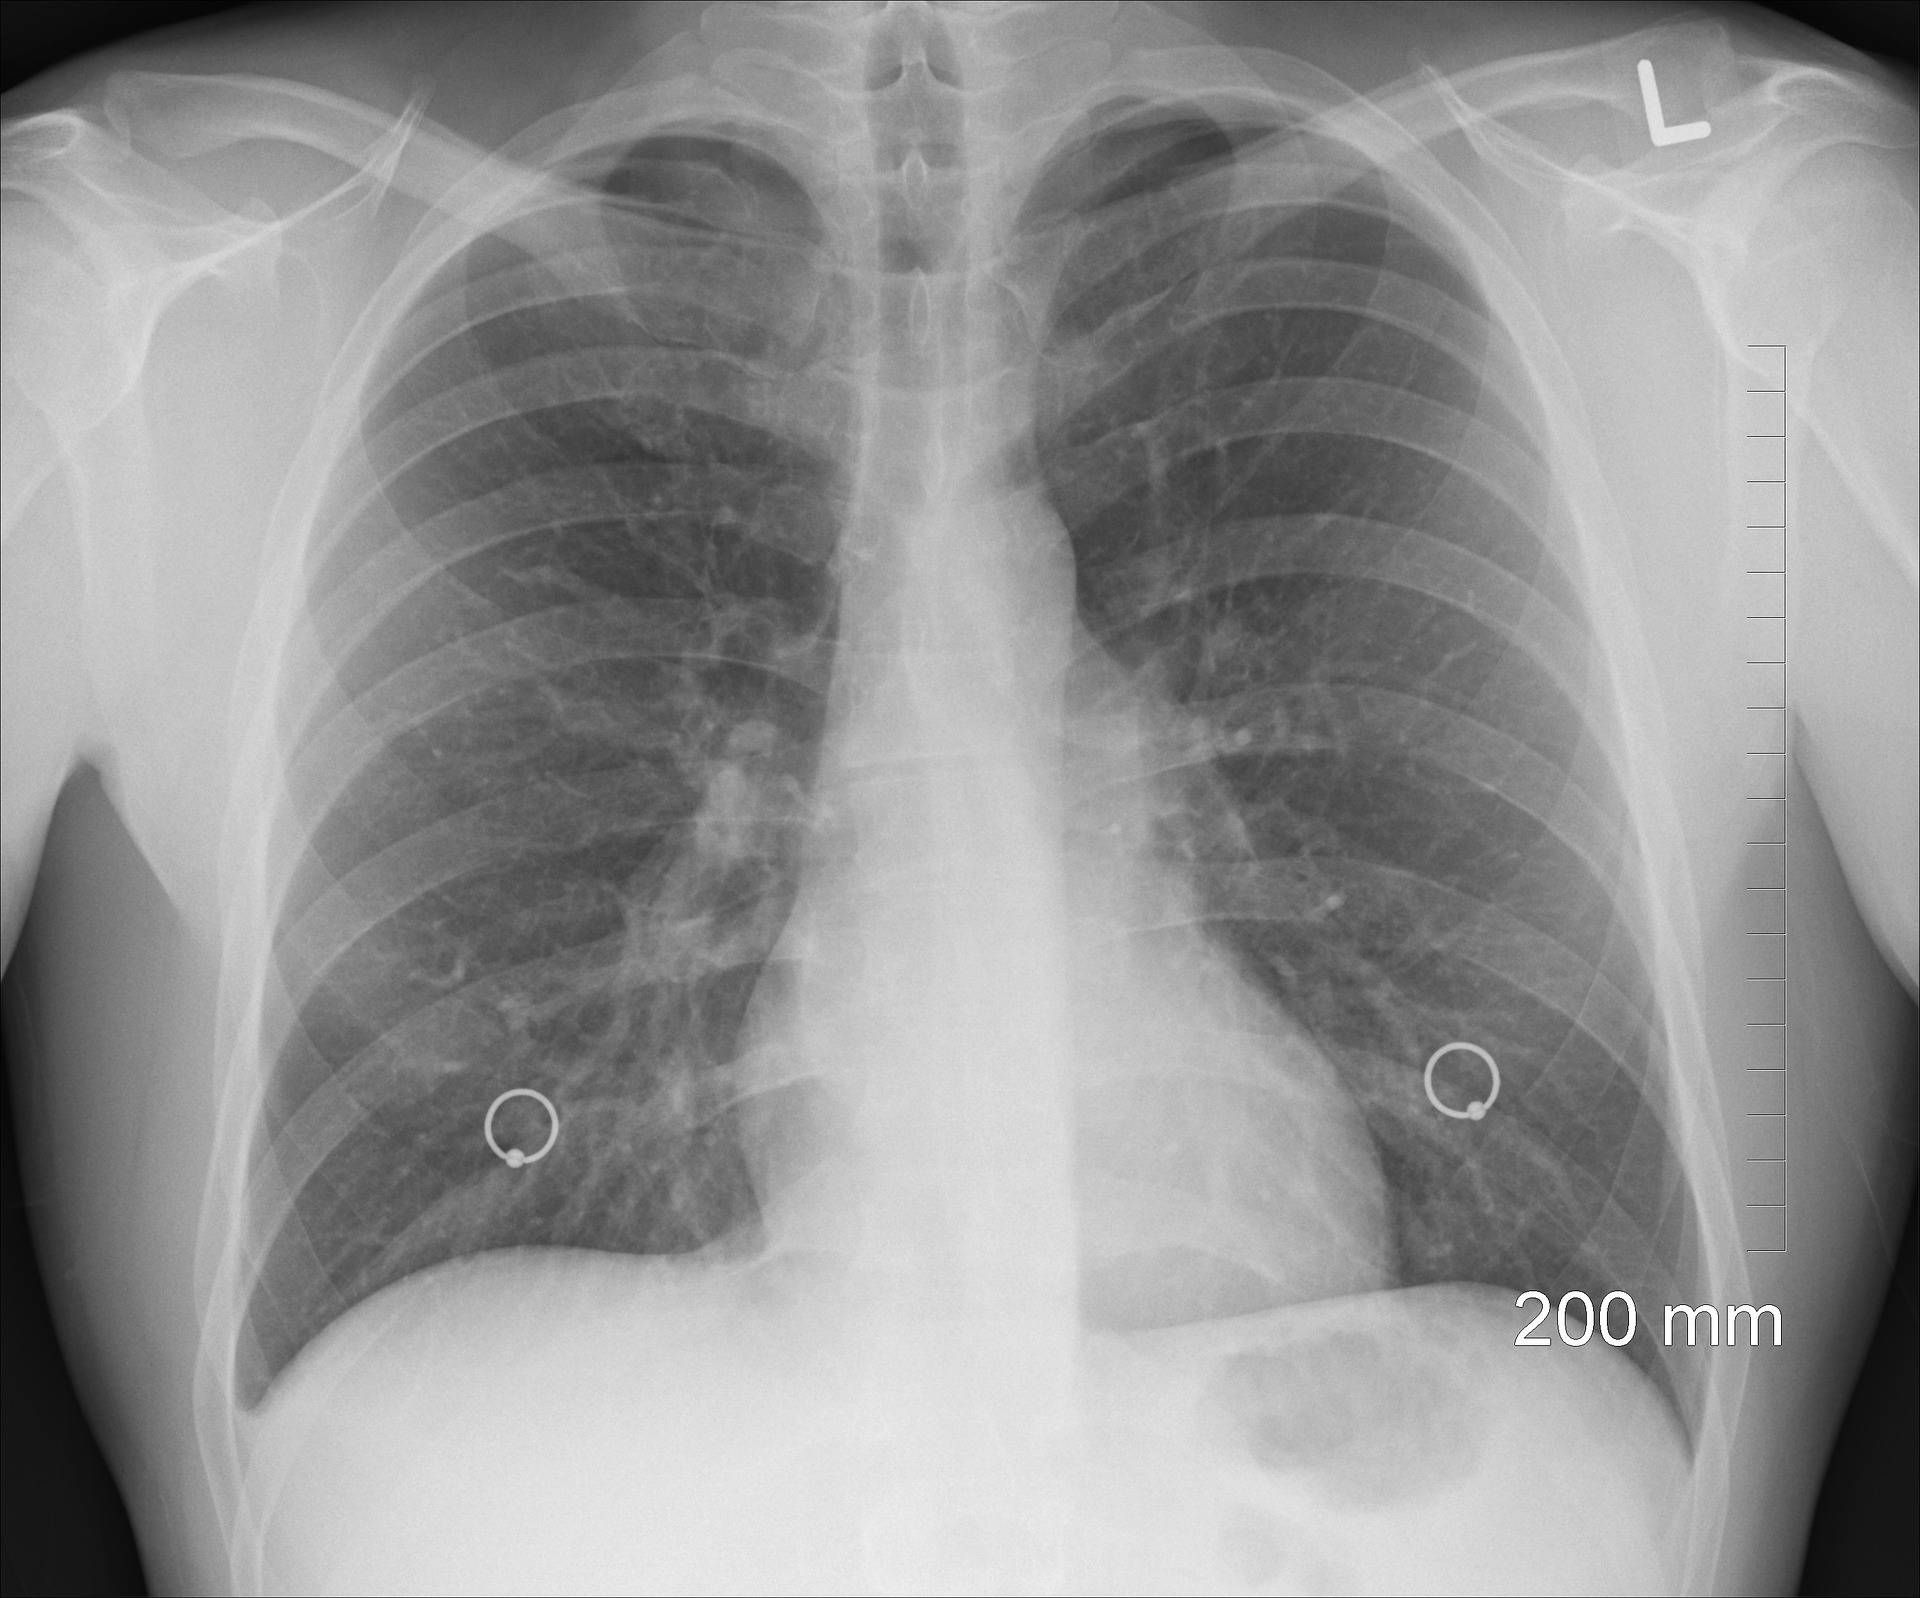 59+ Asbestos x ray images